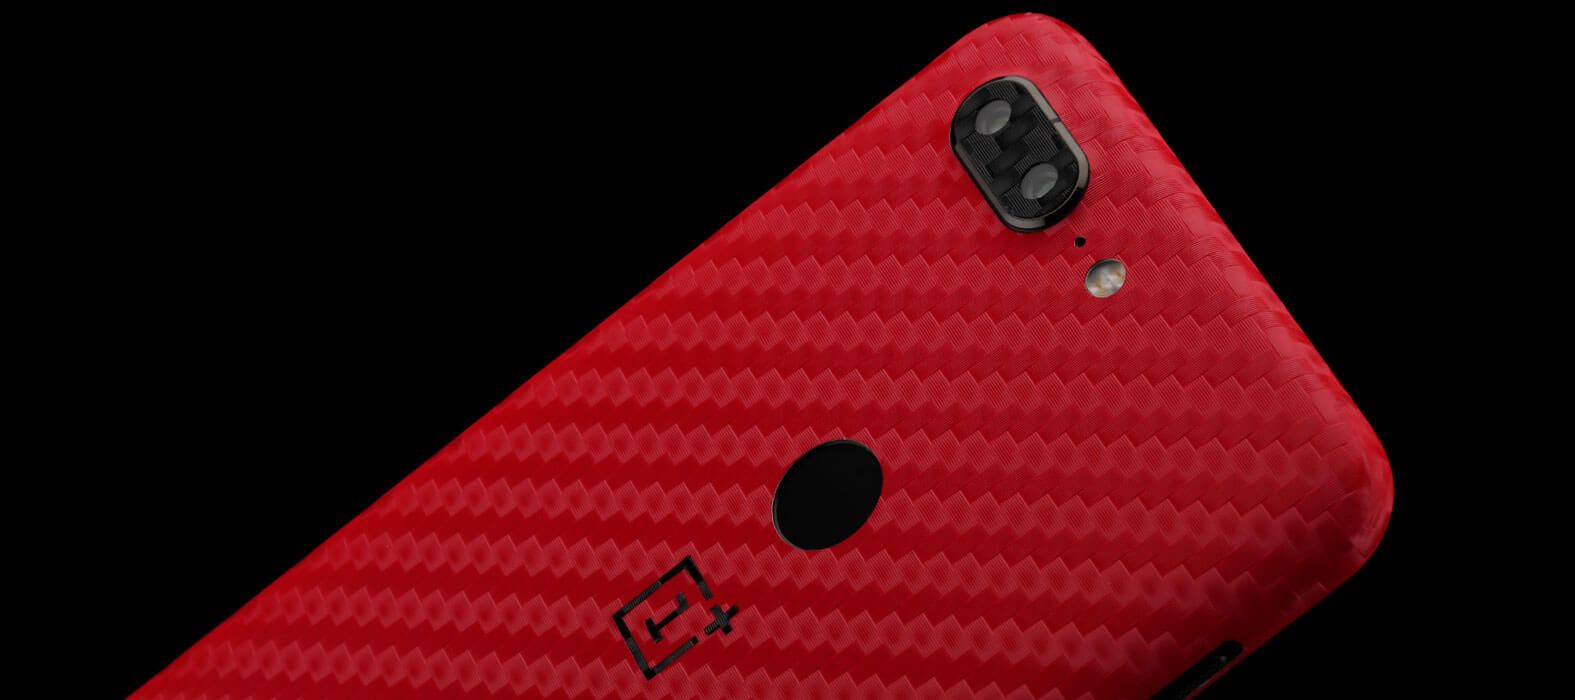 OnePlus 5T Skins, Decals, Wraps - Red Carbon fiber